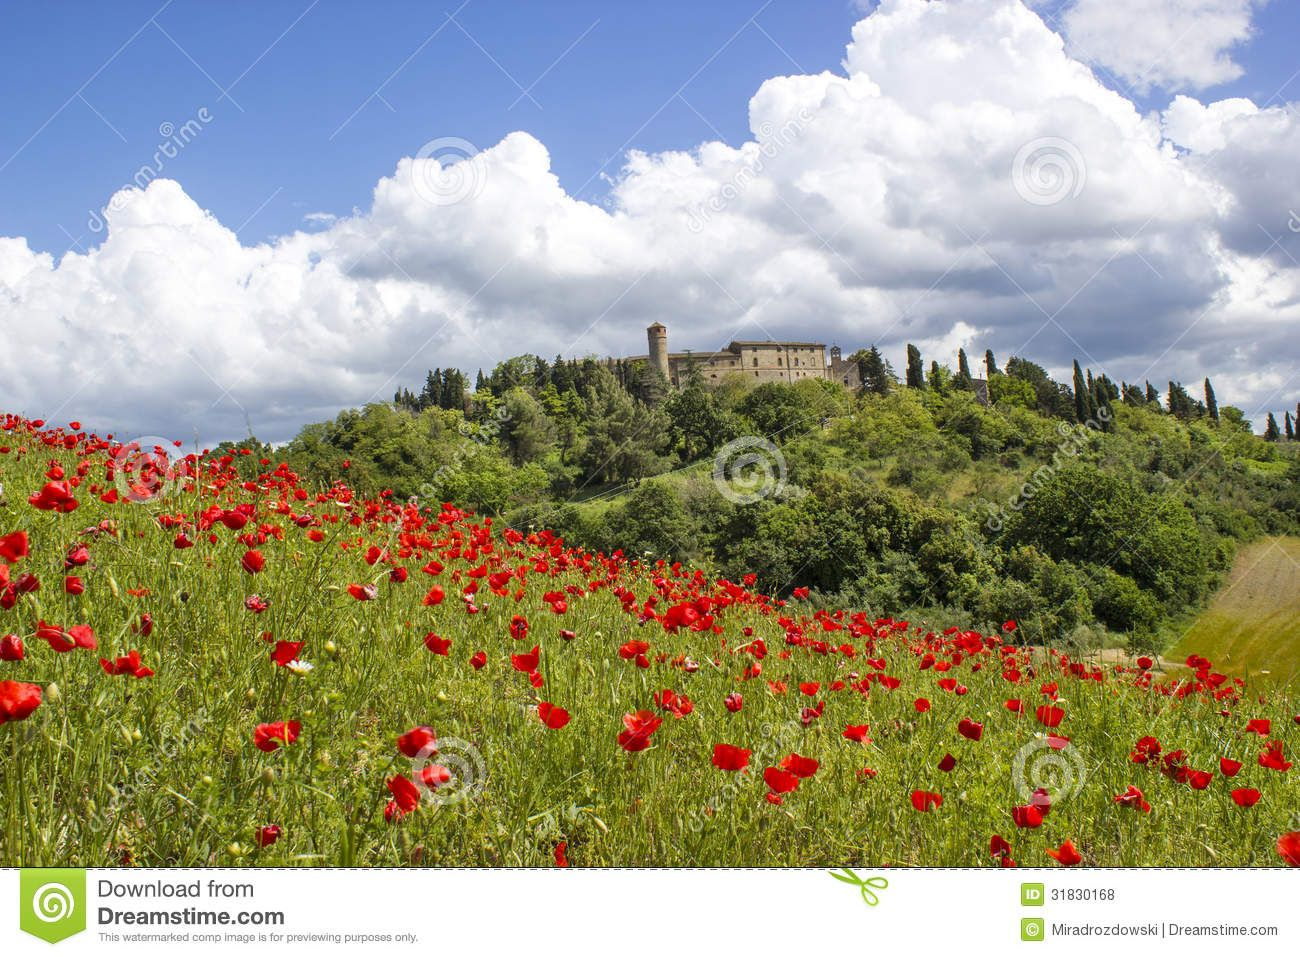 Tuscan Landscape Photos Copyright Free Spring In Tuscany Royalty Free Stock Photos Image 31830168 Landscape Photos Tuscany Landscape Tuscan Landscaping